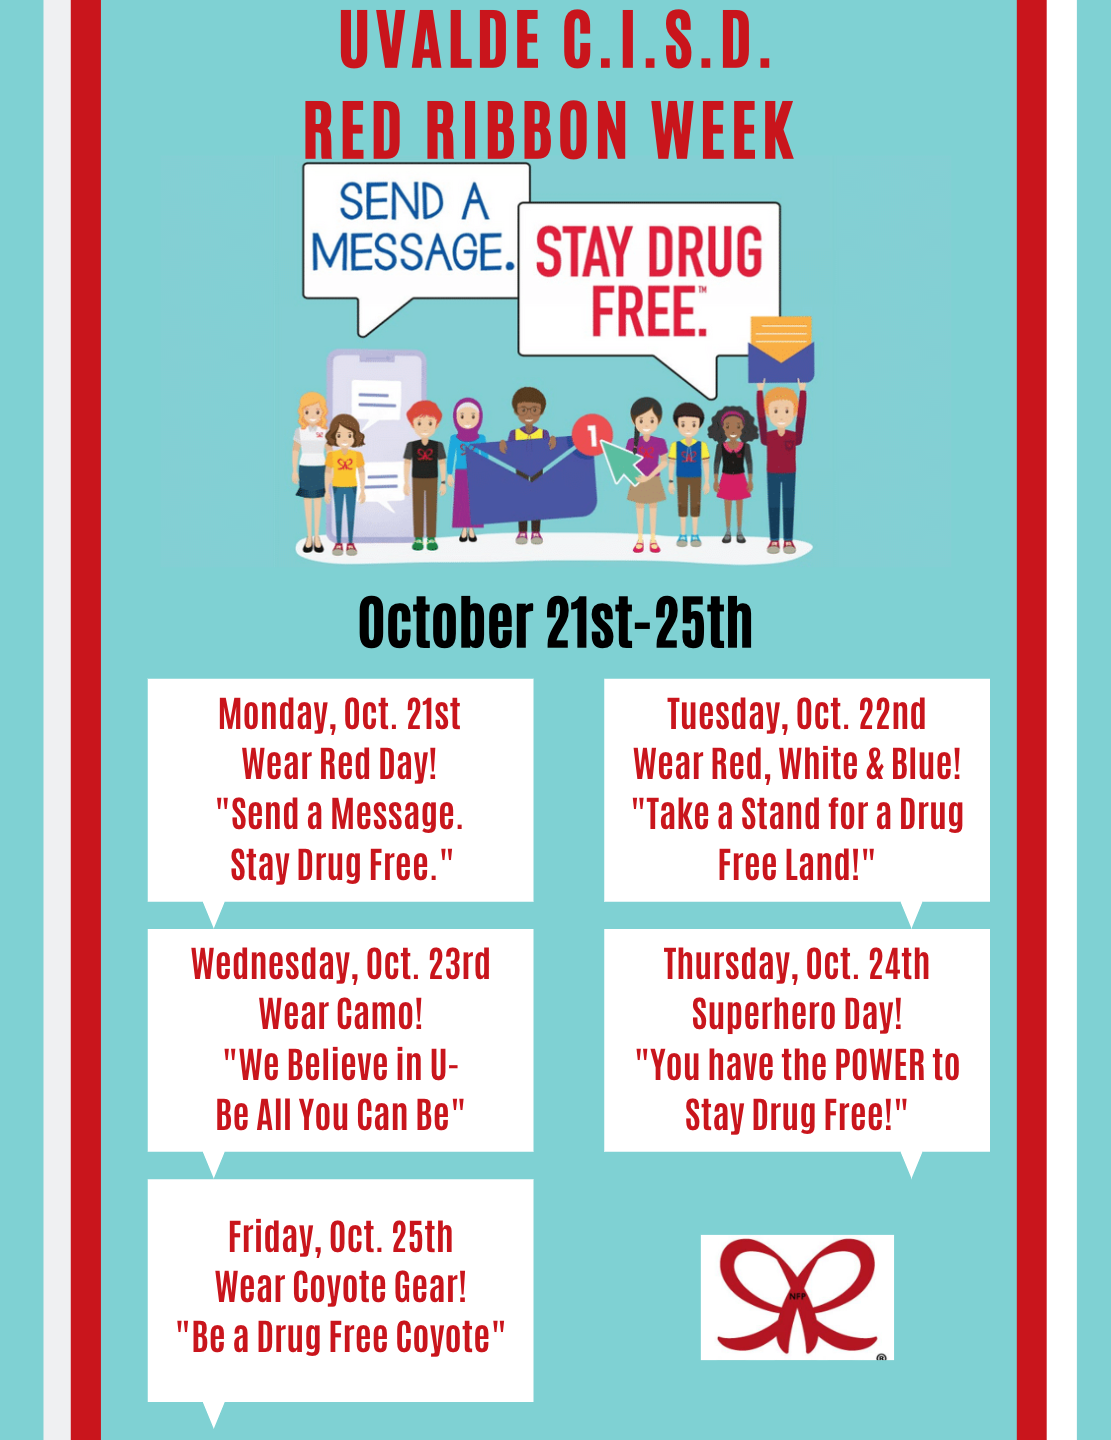 UCISD Red Ribbon Week Schedule